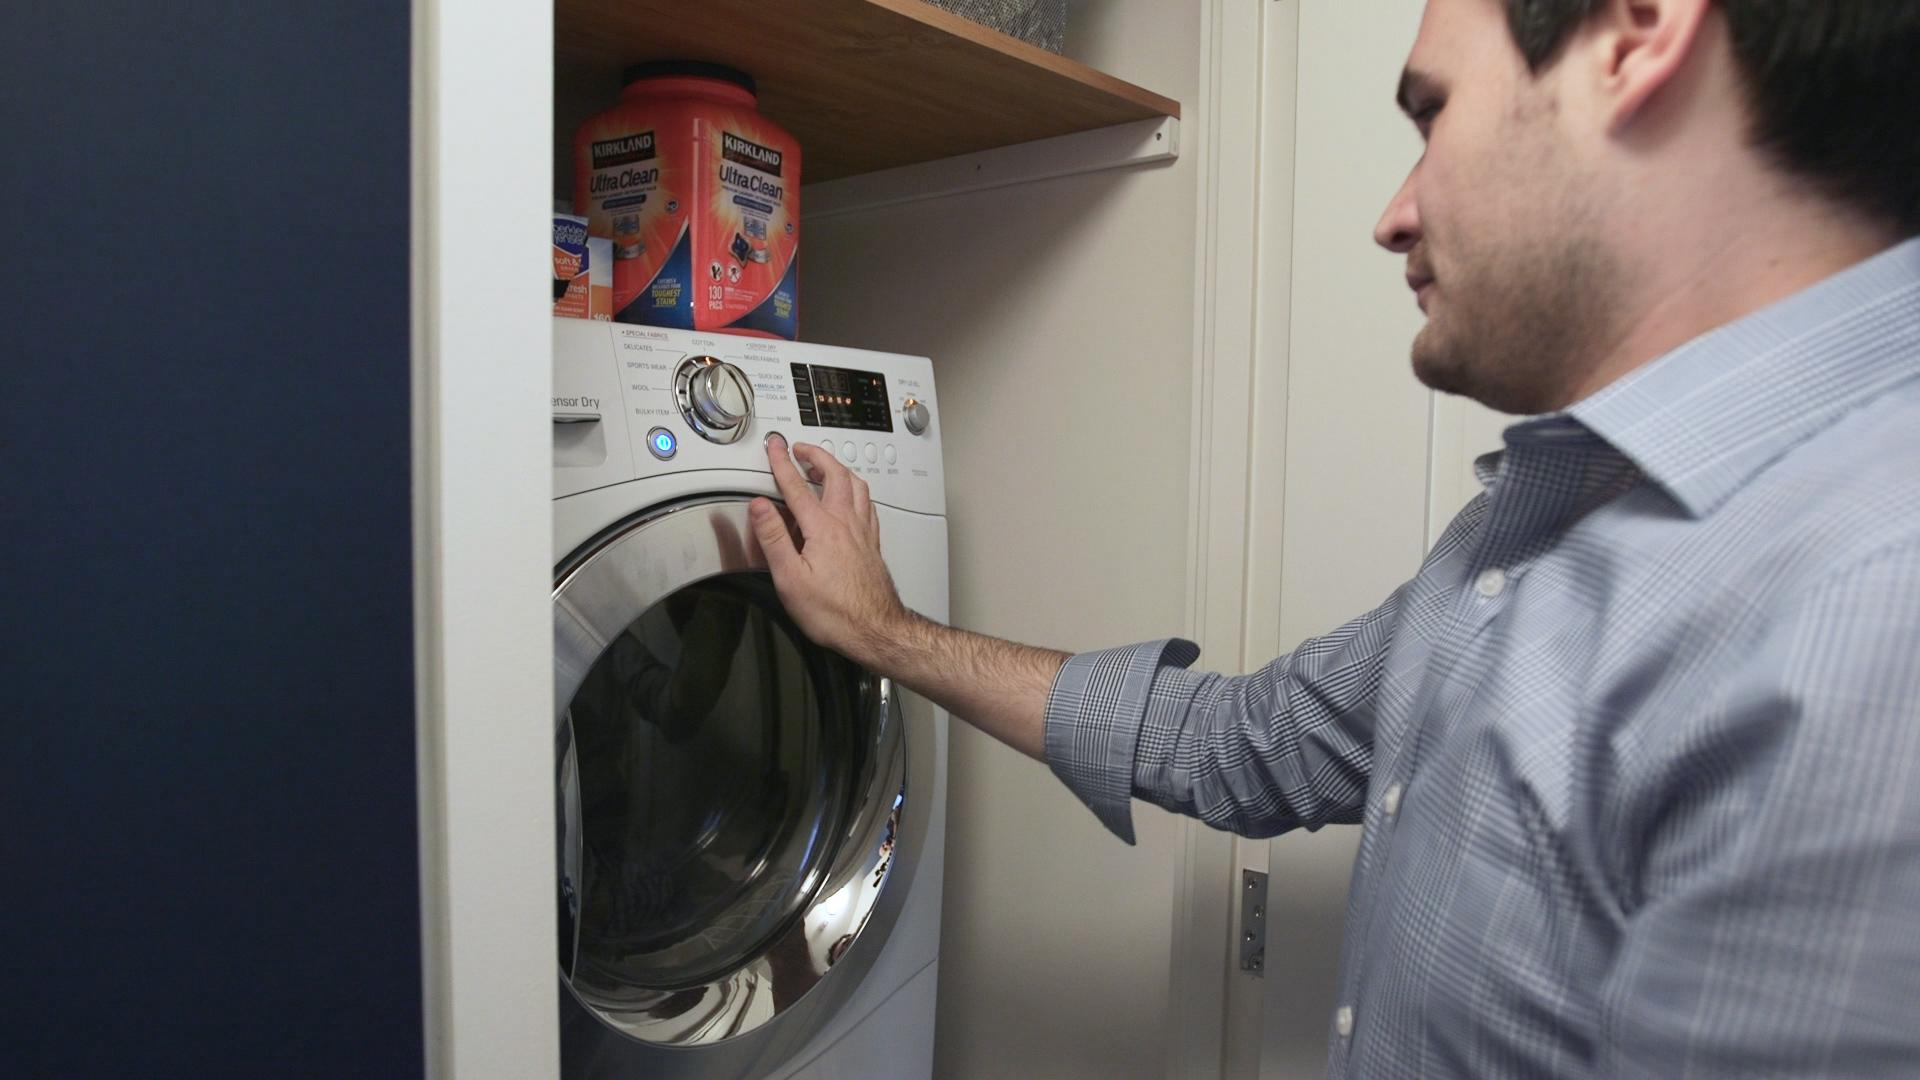 Matching pact Washers and Dryers Consumer Reports